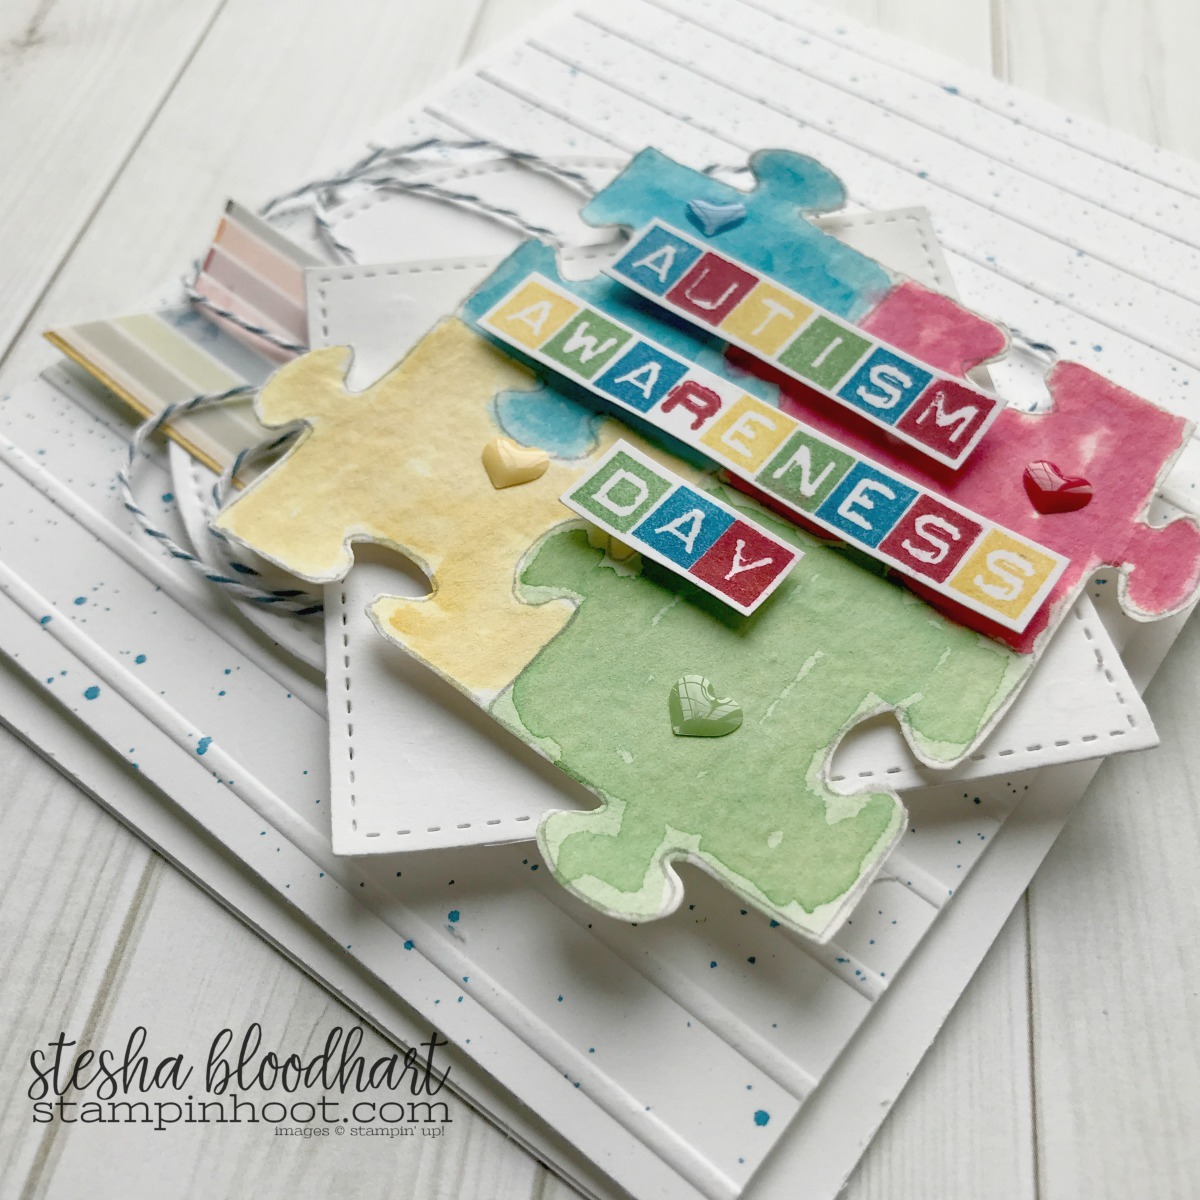 World Autism Awareness Day Blog Hop! Labeler Alphabet by Stampin' Up! helps to easily customize sentiments #stampinhoot #steshabloodhart